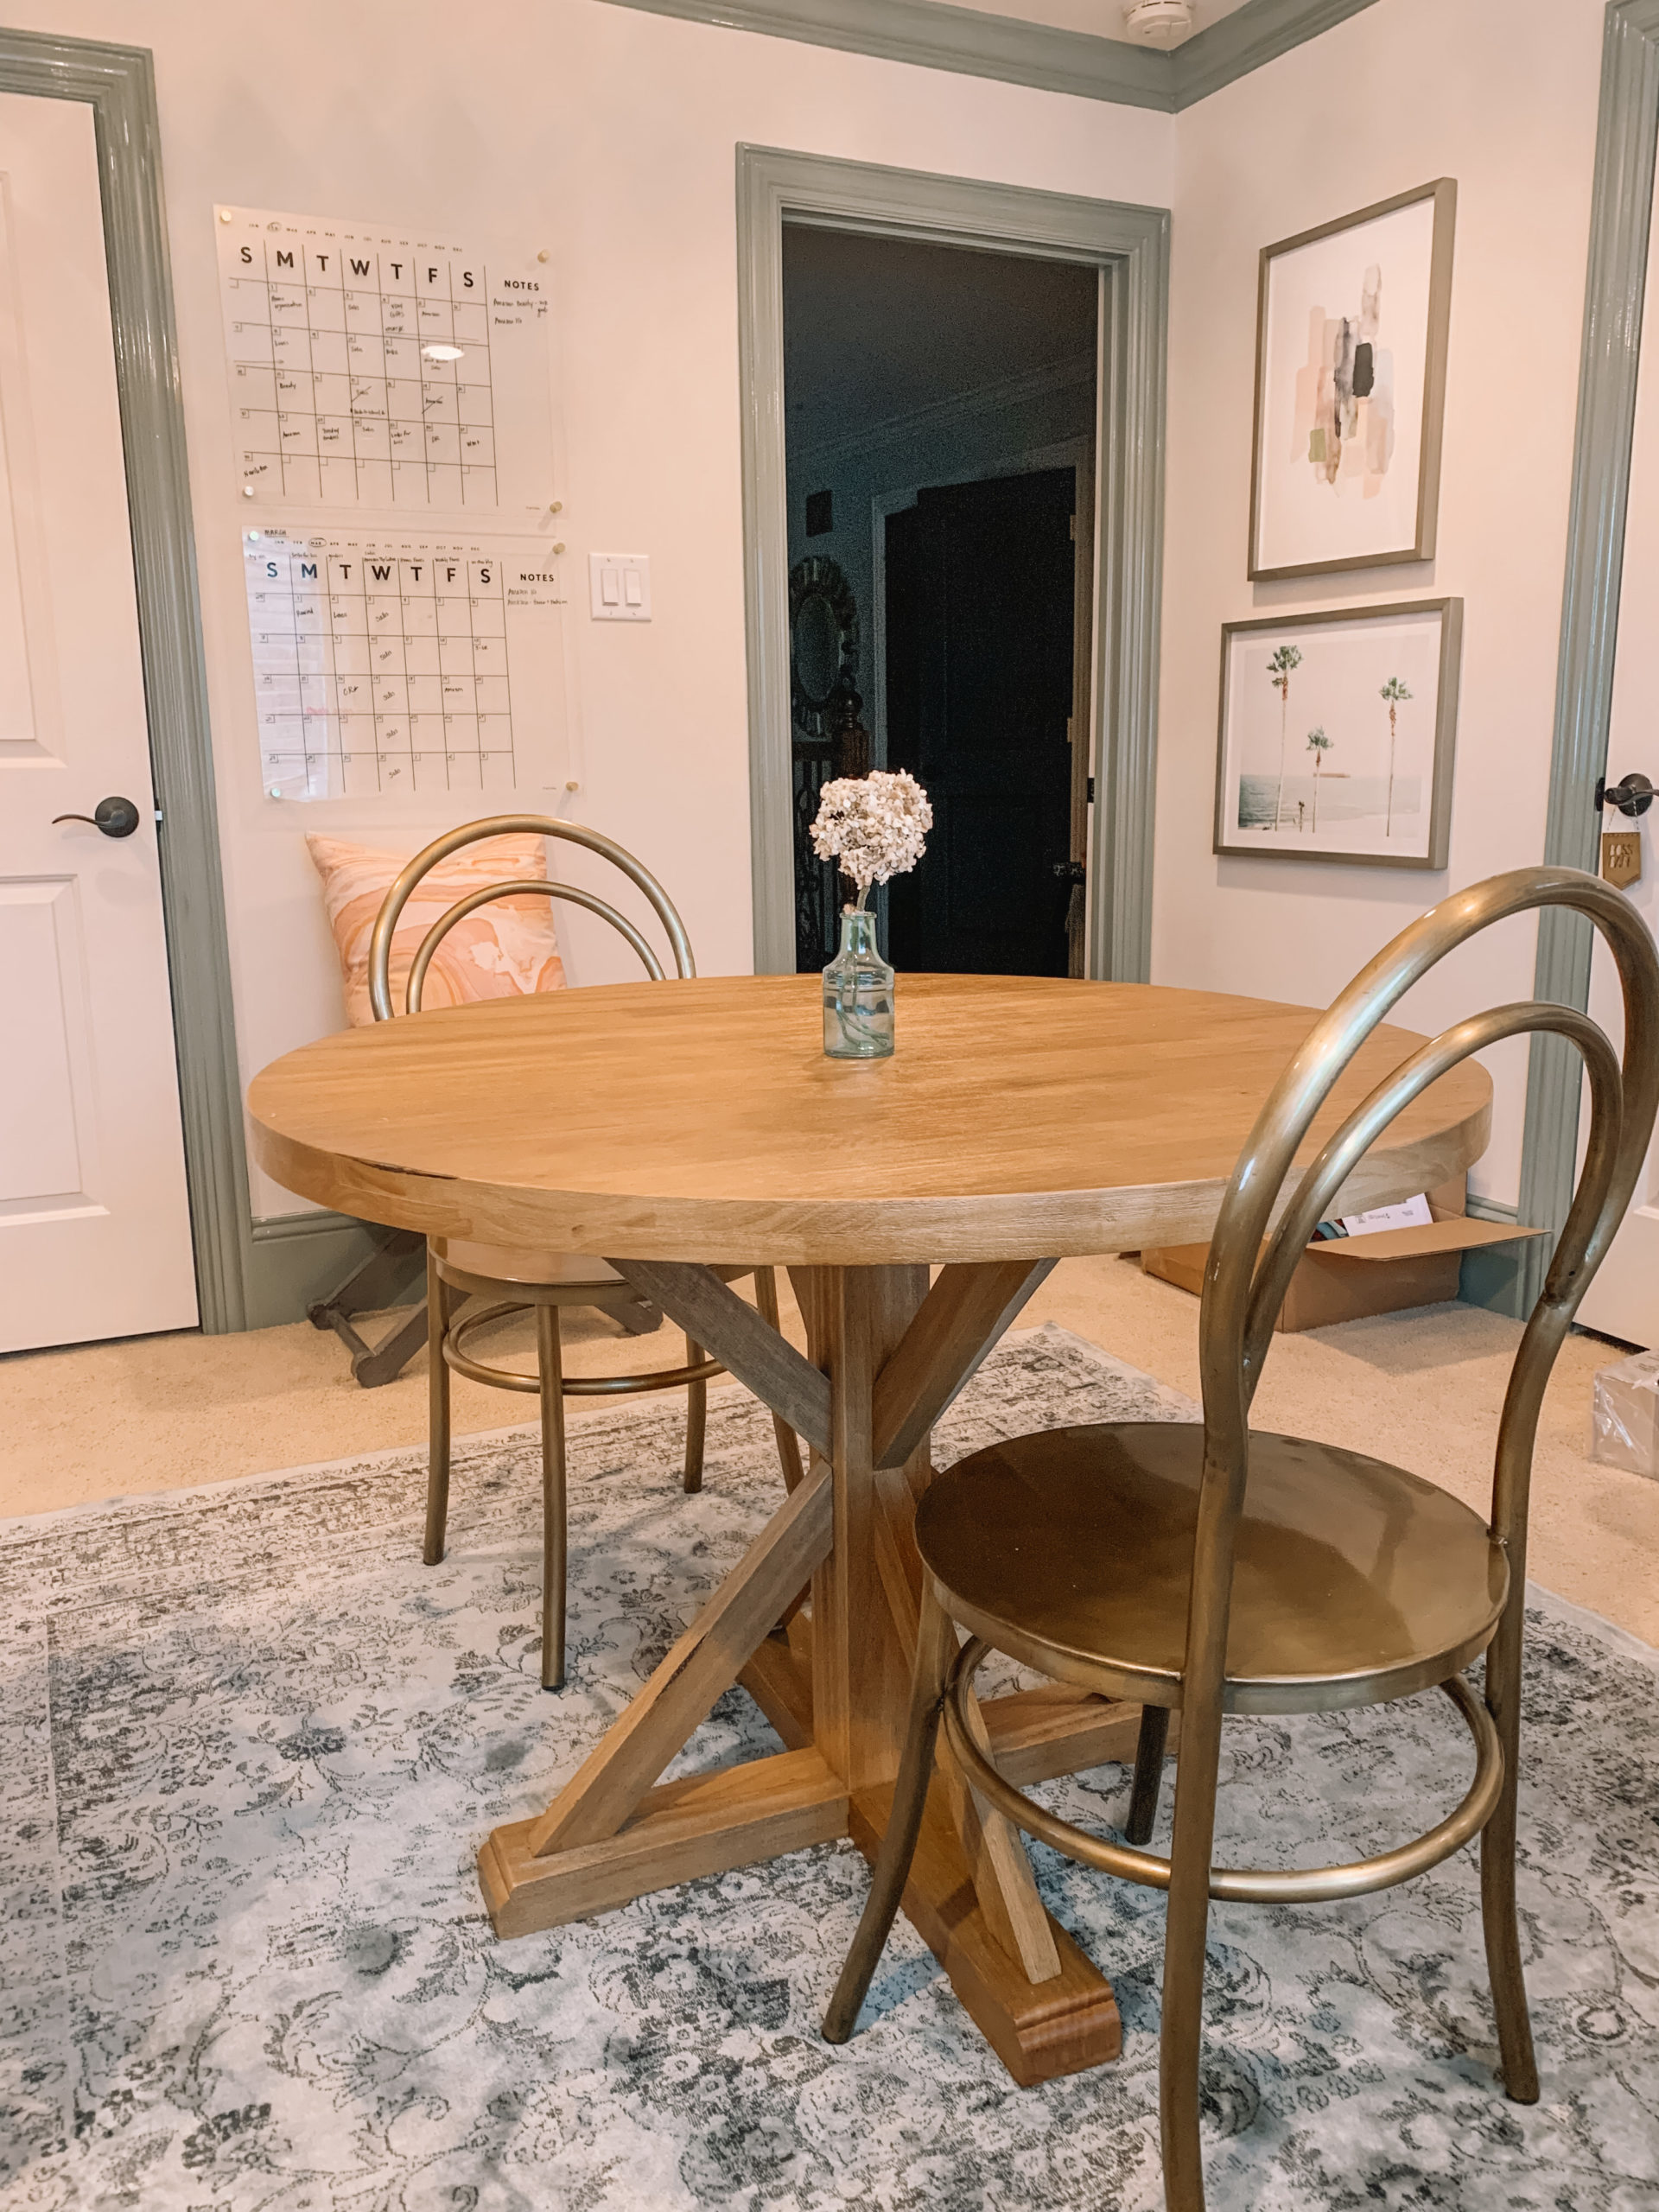 Target round wooden table